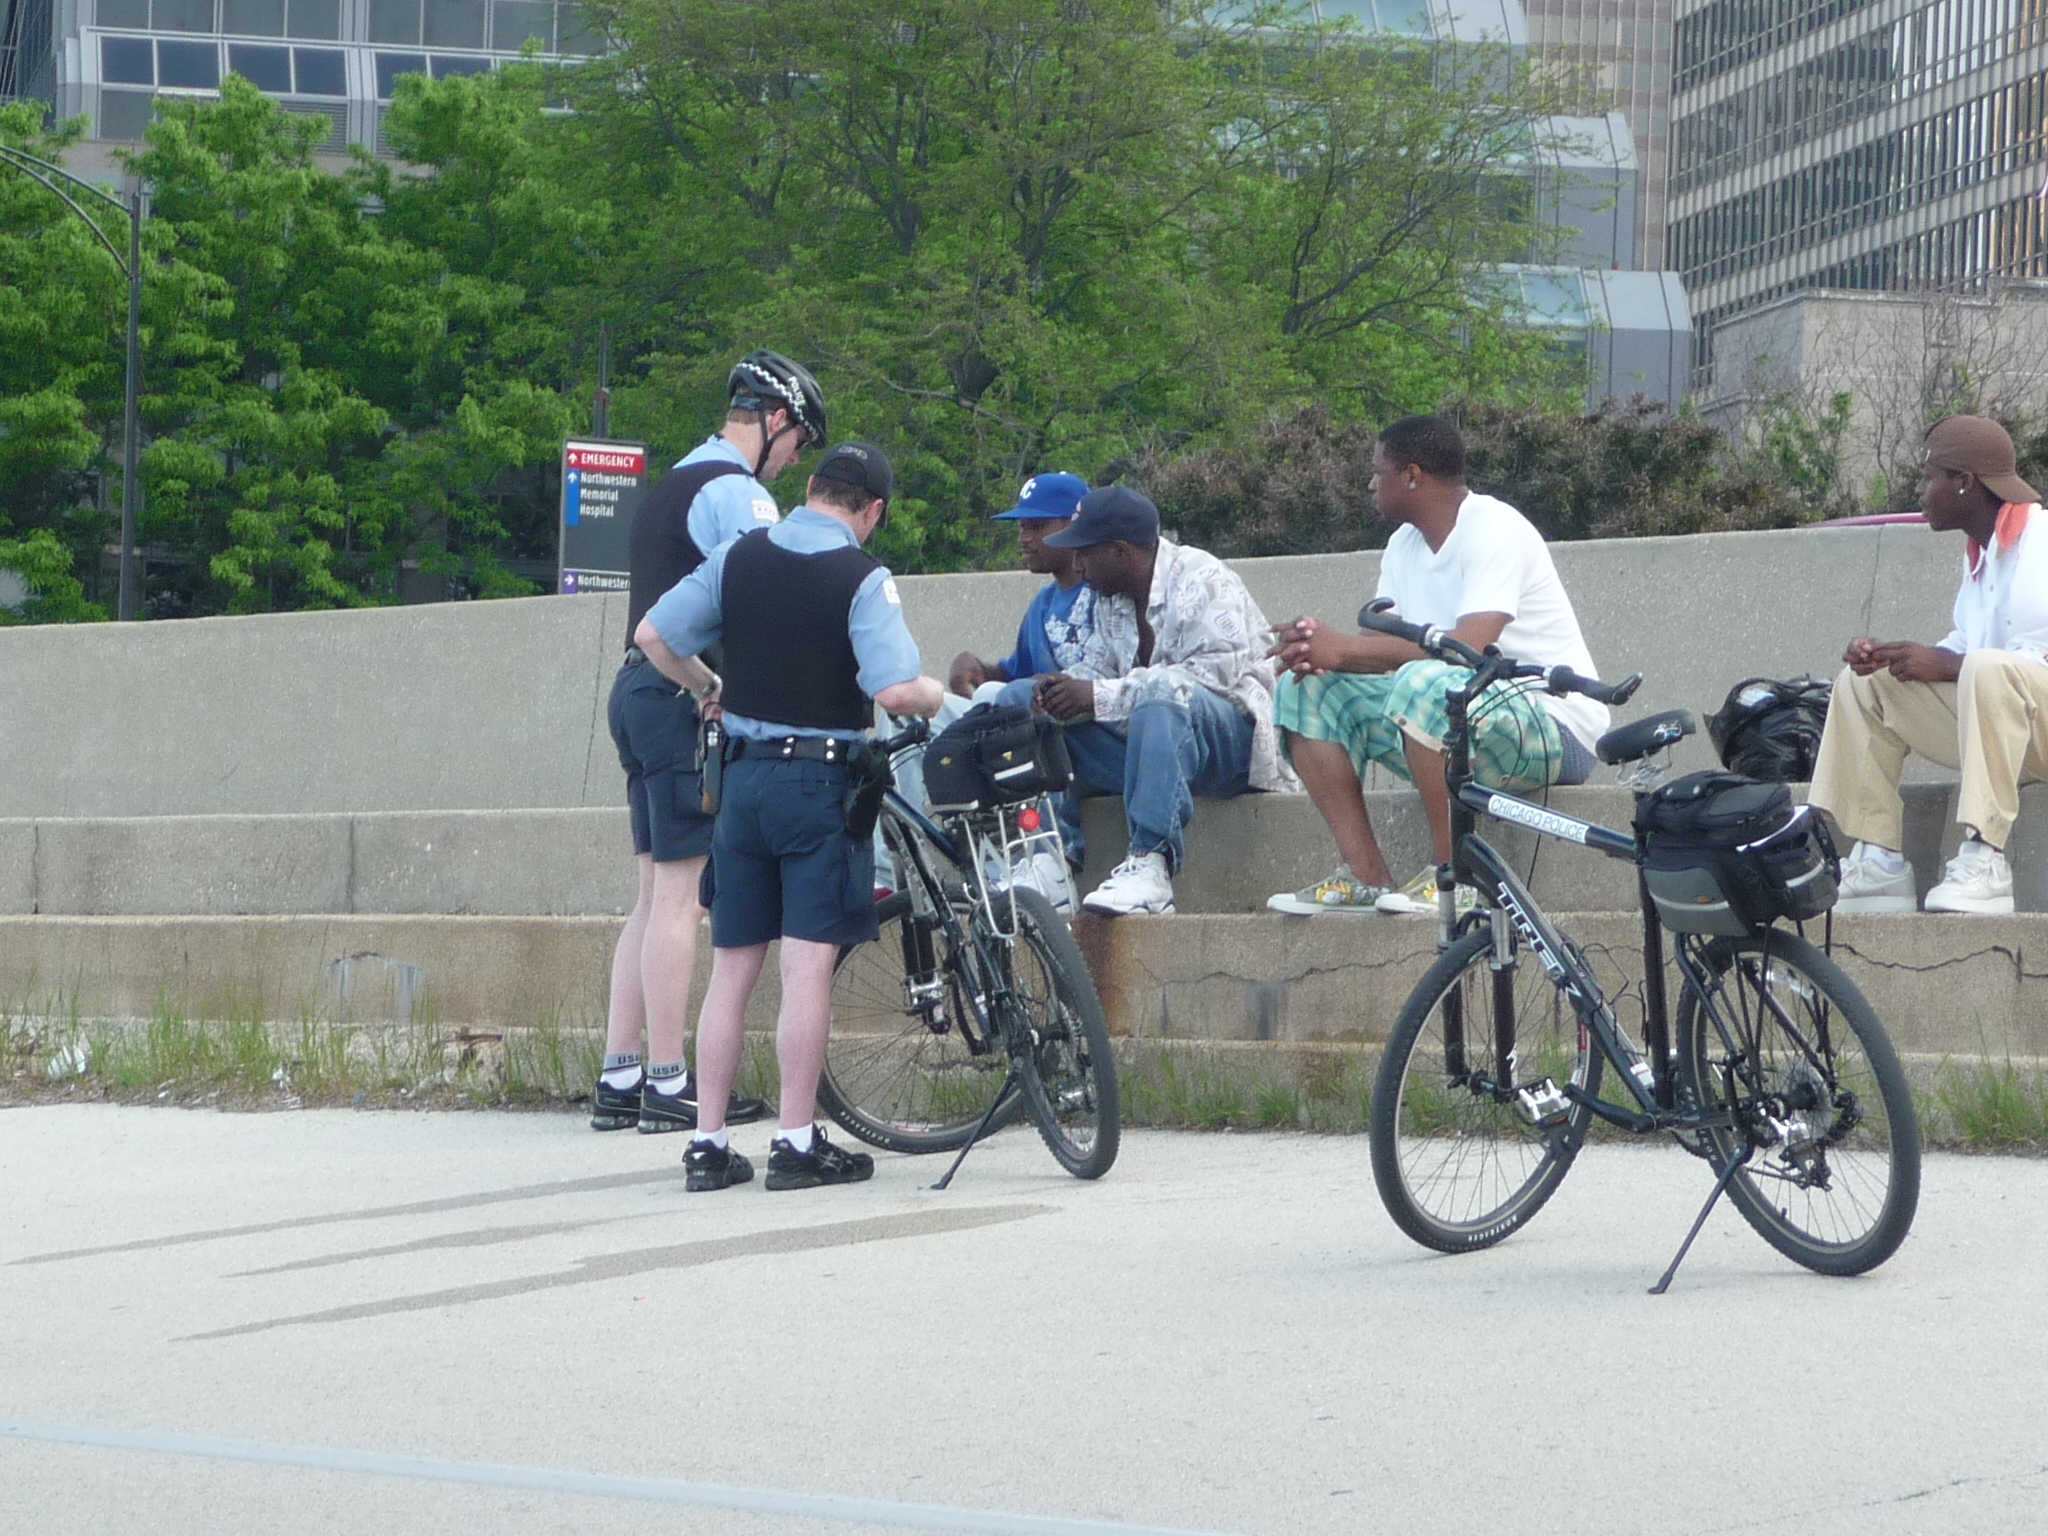 Chicago Cops to Patrol Most Violent Areas on Bikes